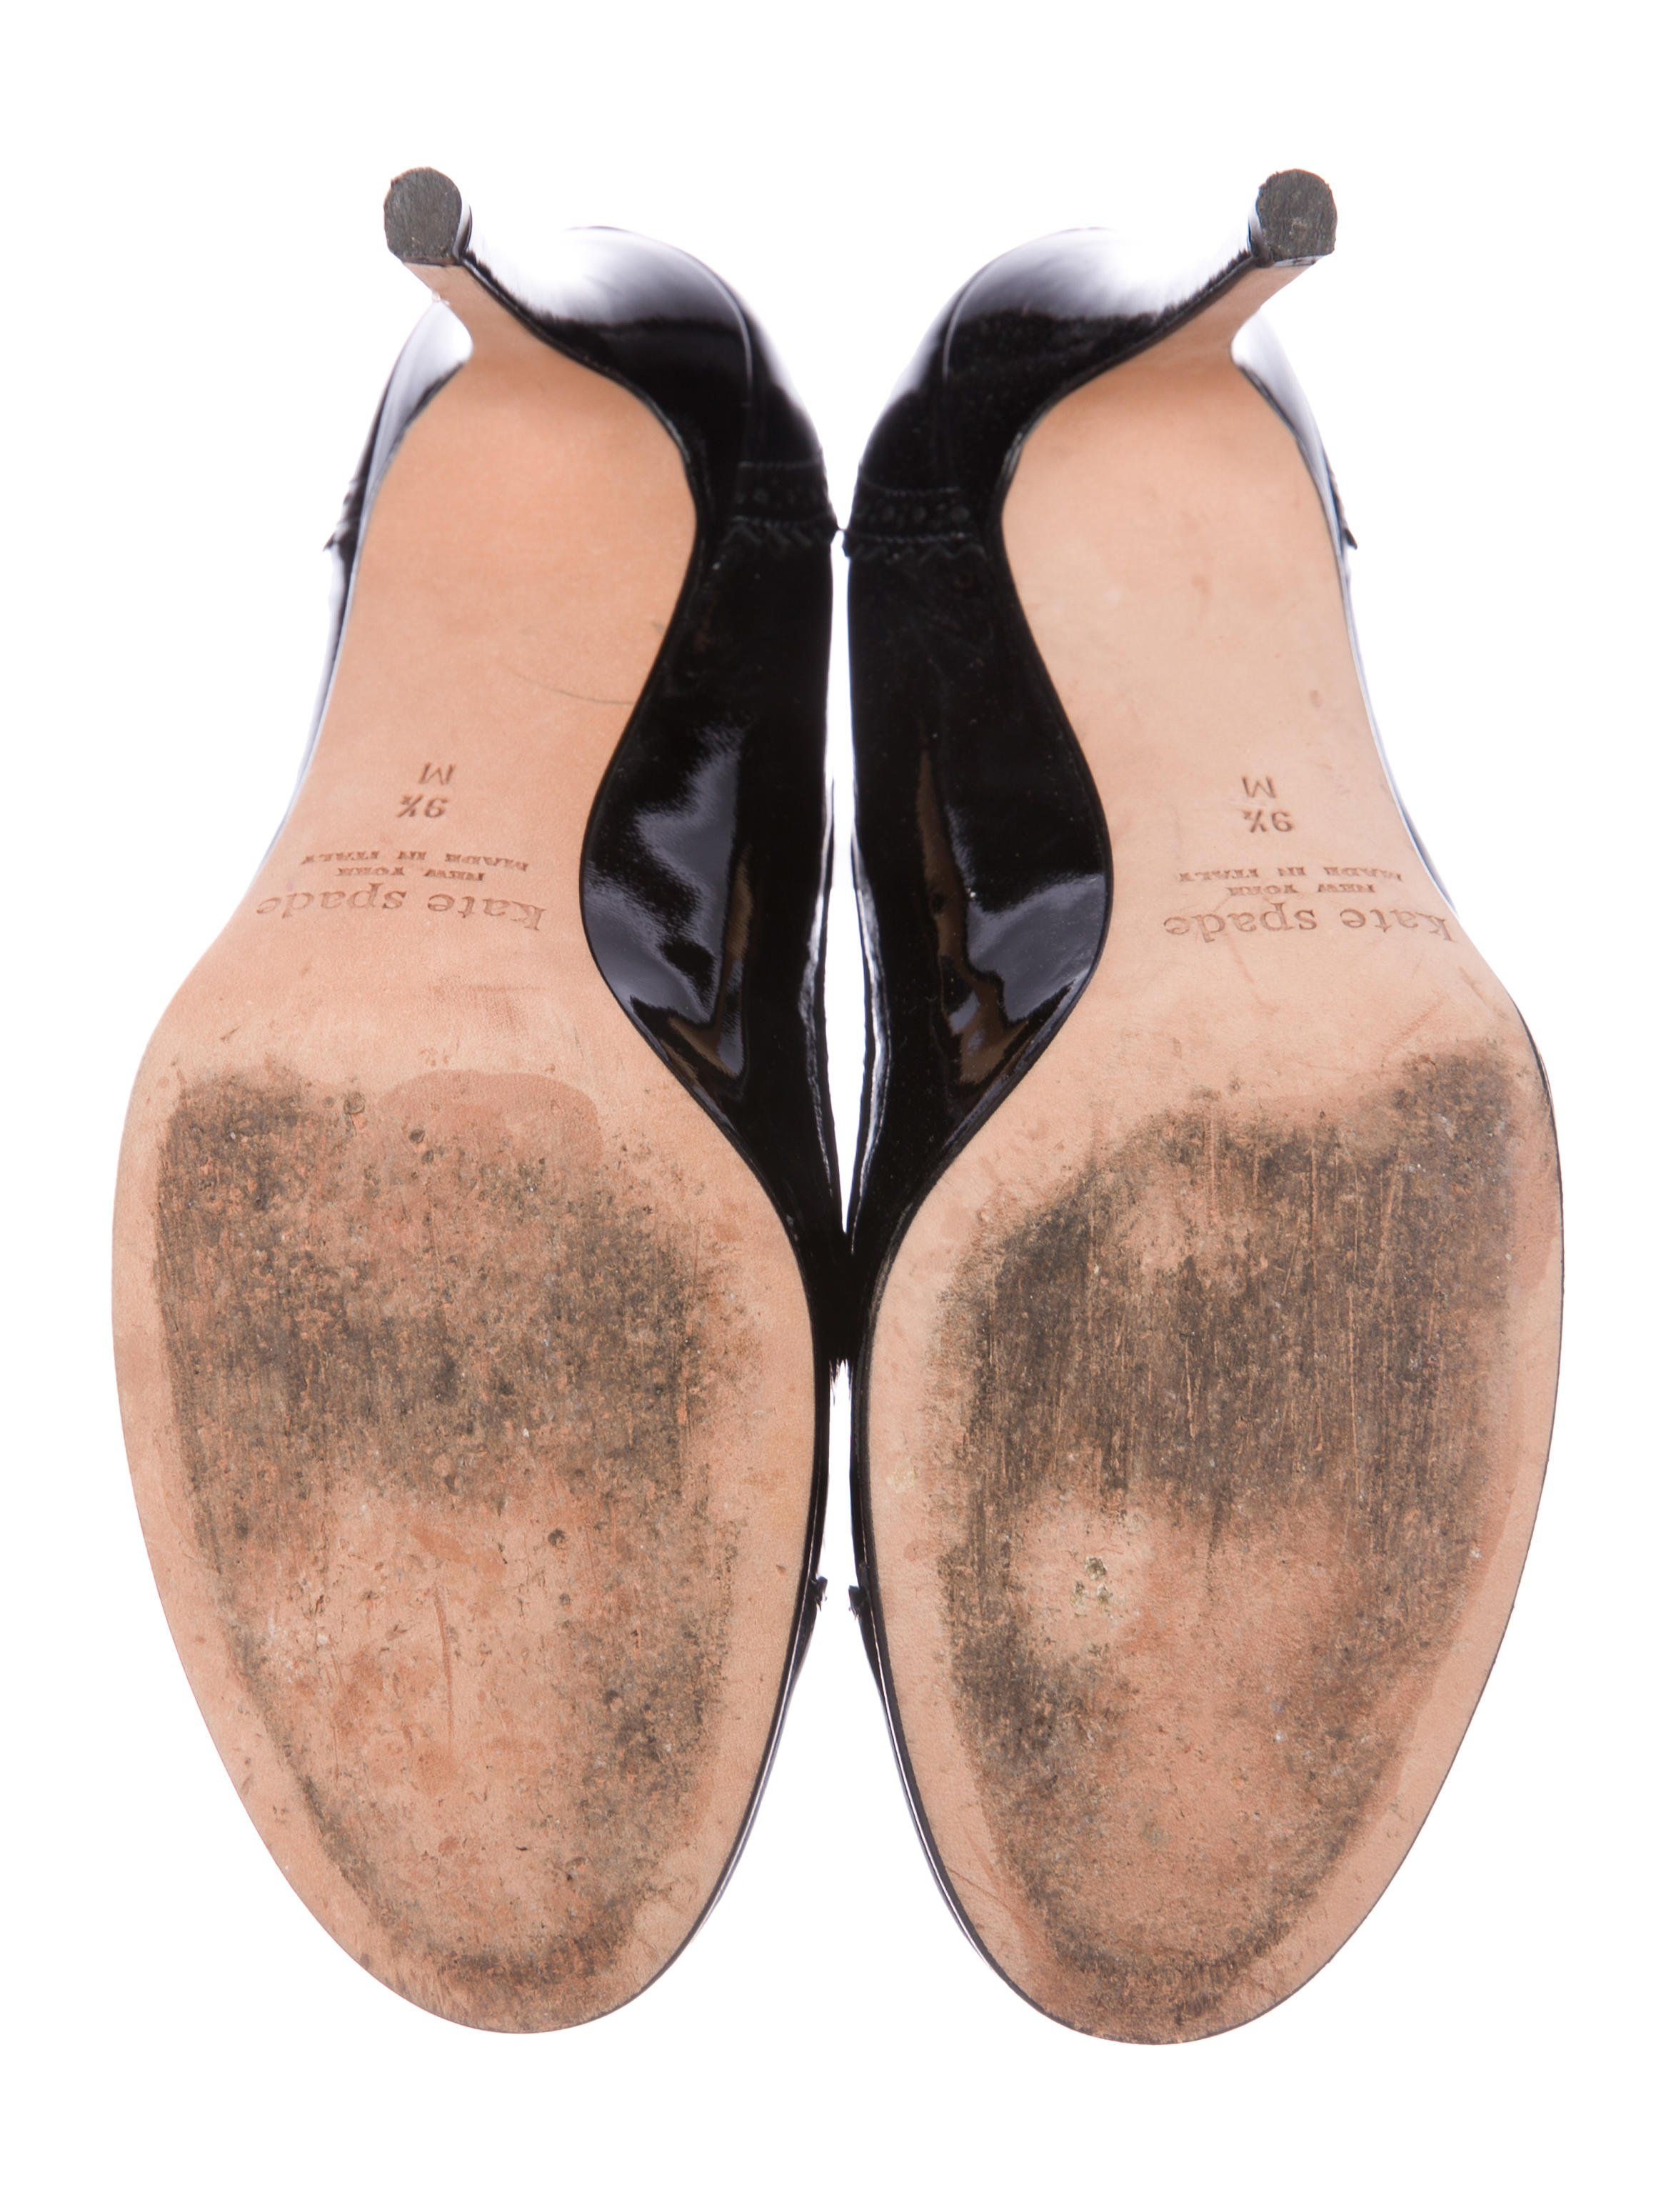 e3a7f754fc29 Black patent leather Kate Spade New York round-toe pumps with brogue trim  throughout leather